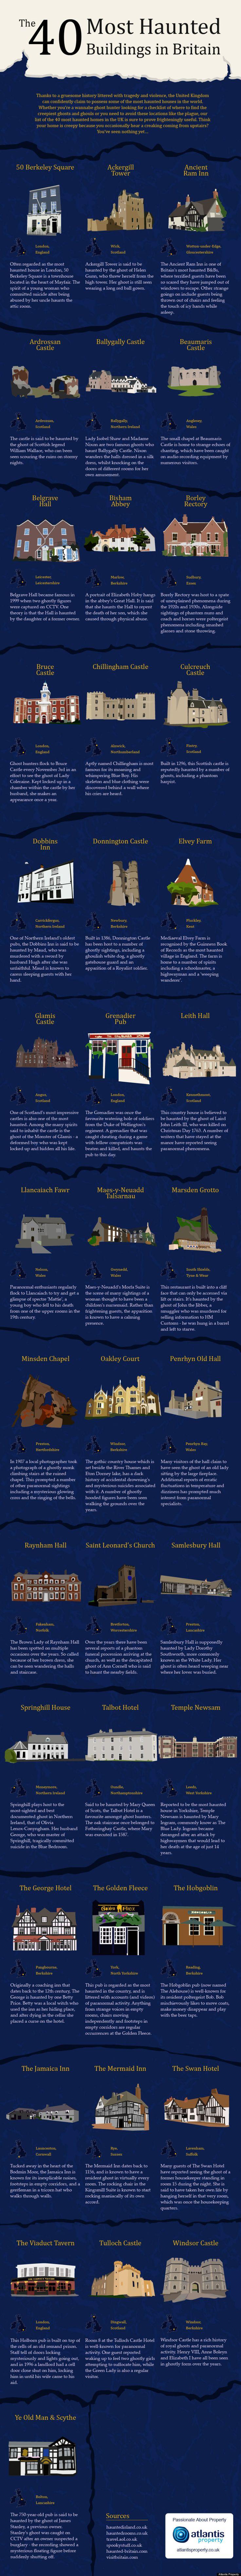 40 most haunted buildings in britain